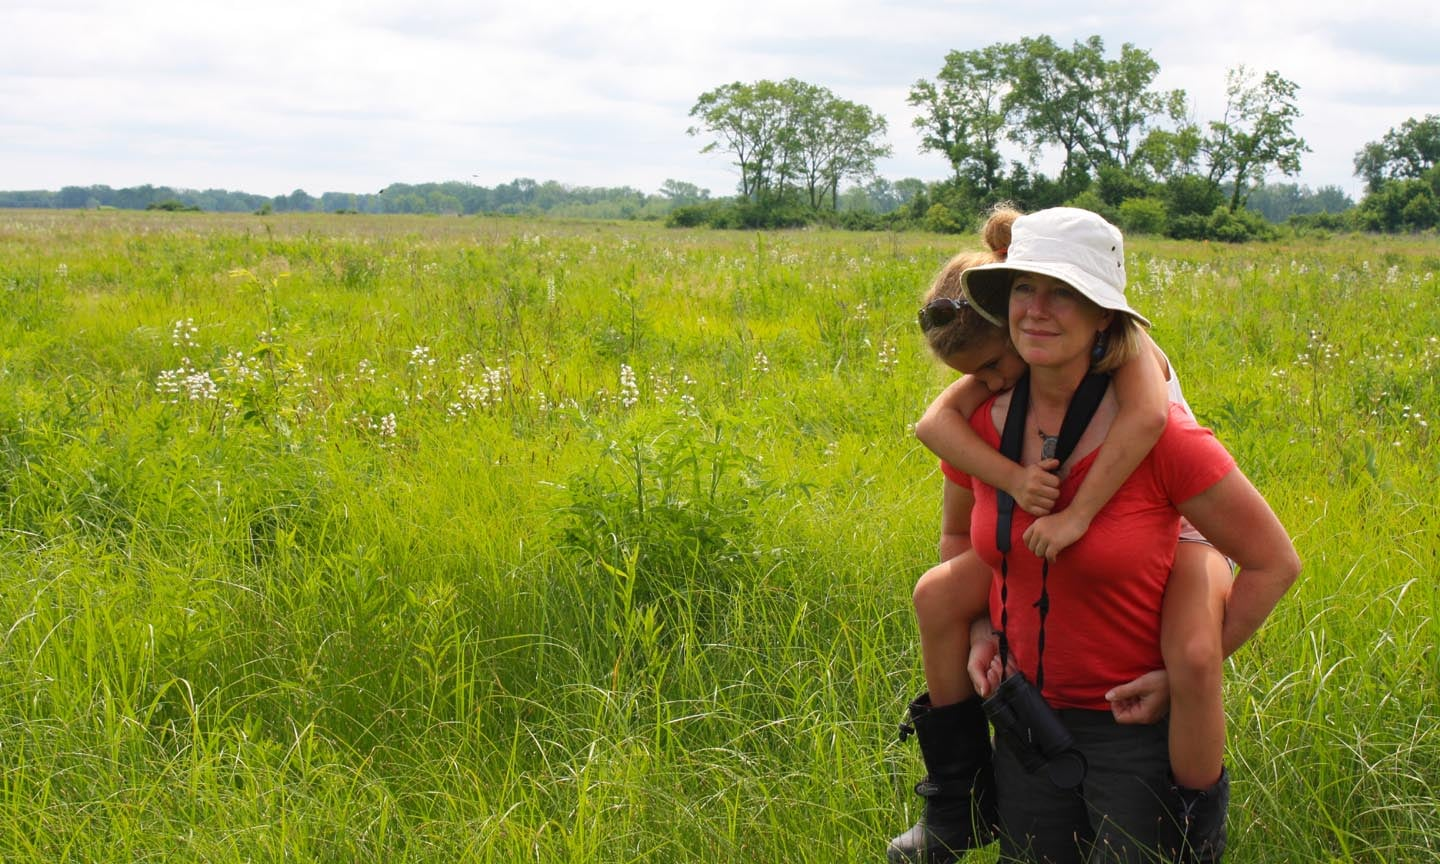 Mother and daughter enjoying a visit to Midewin National Tallgrass Prairie.